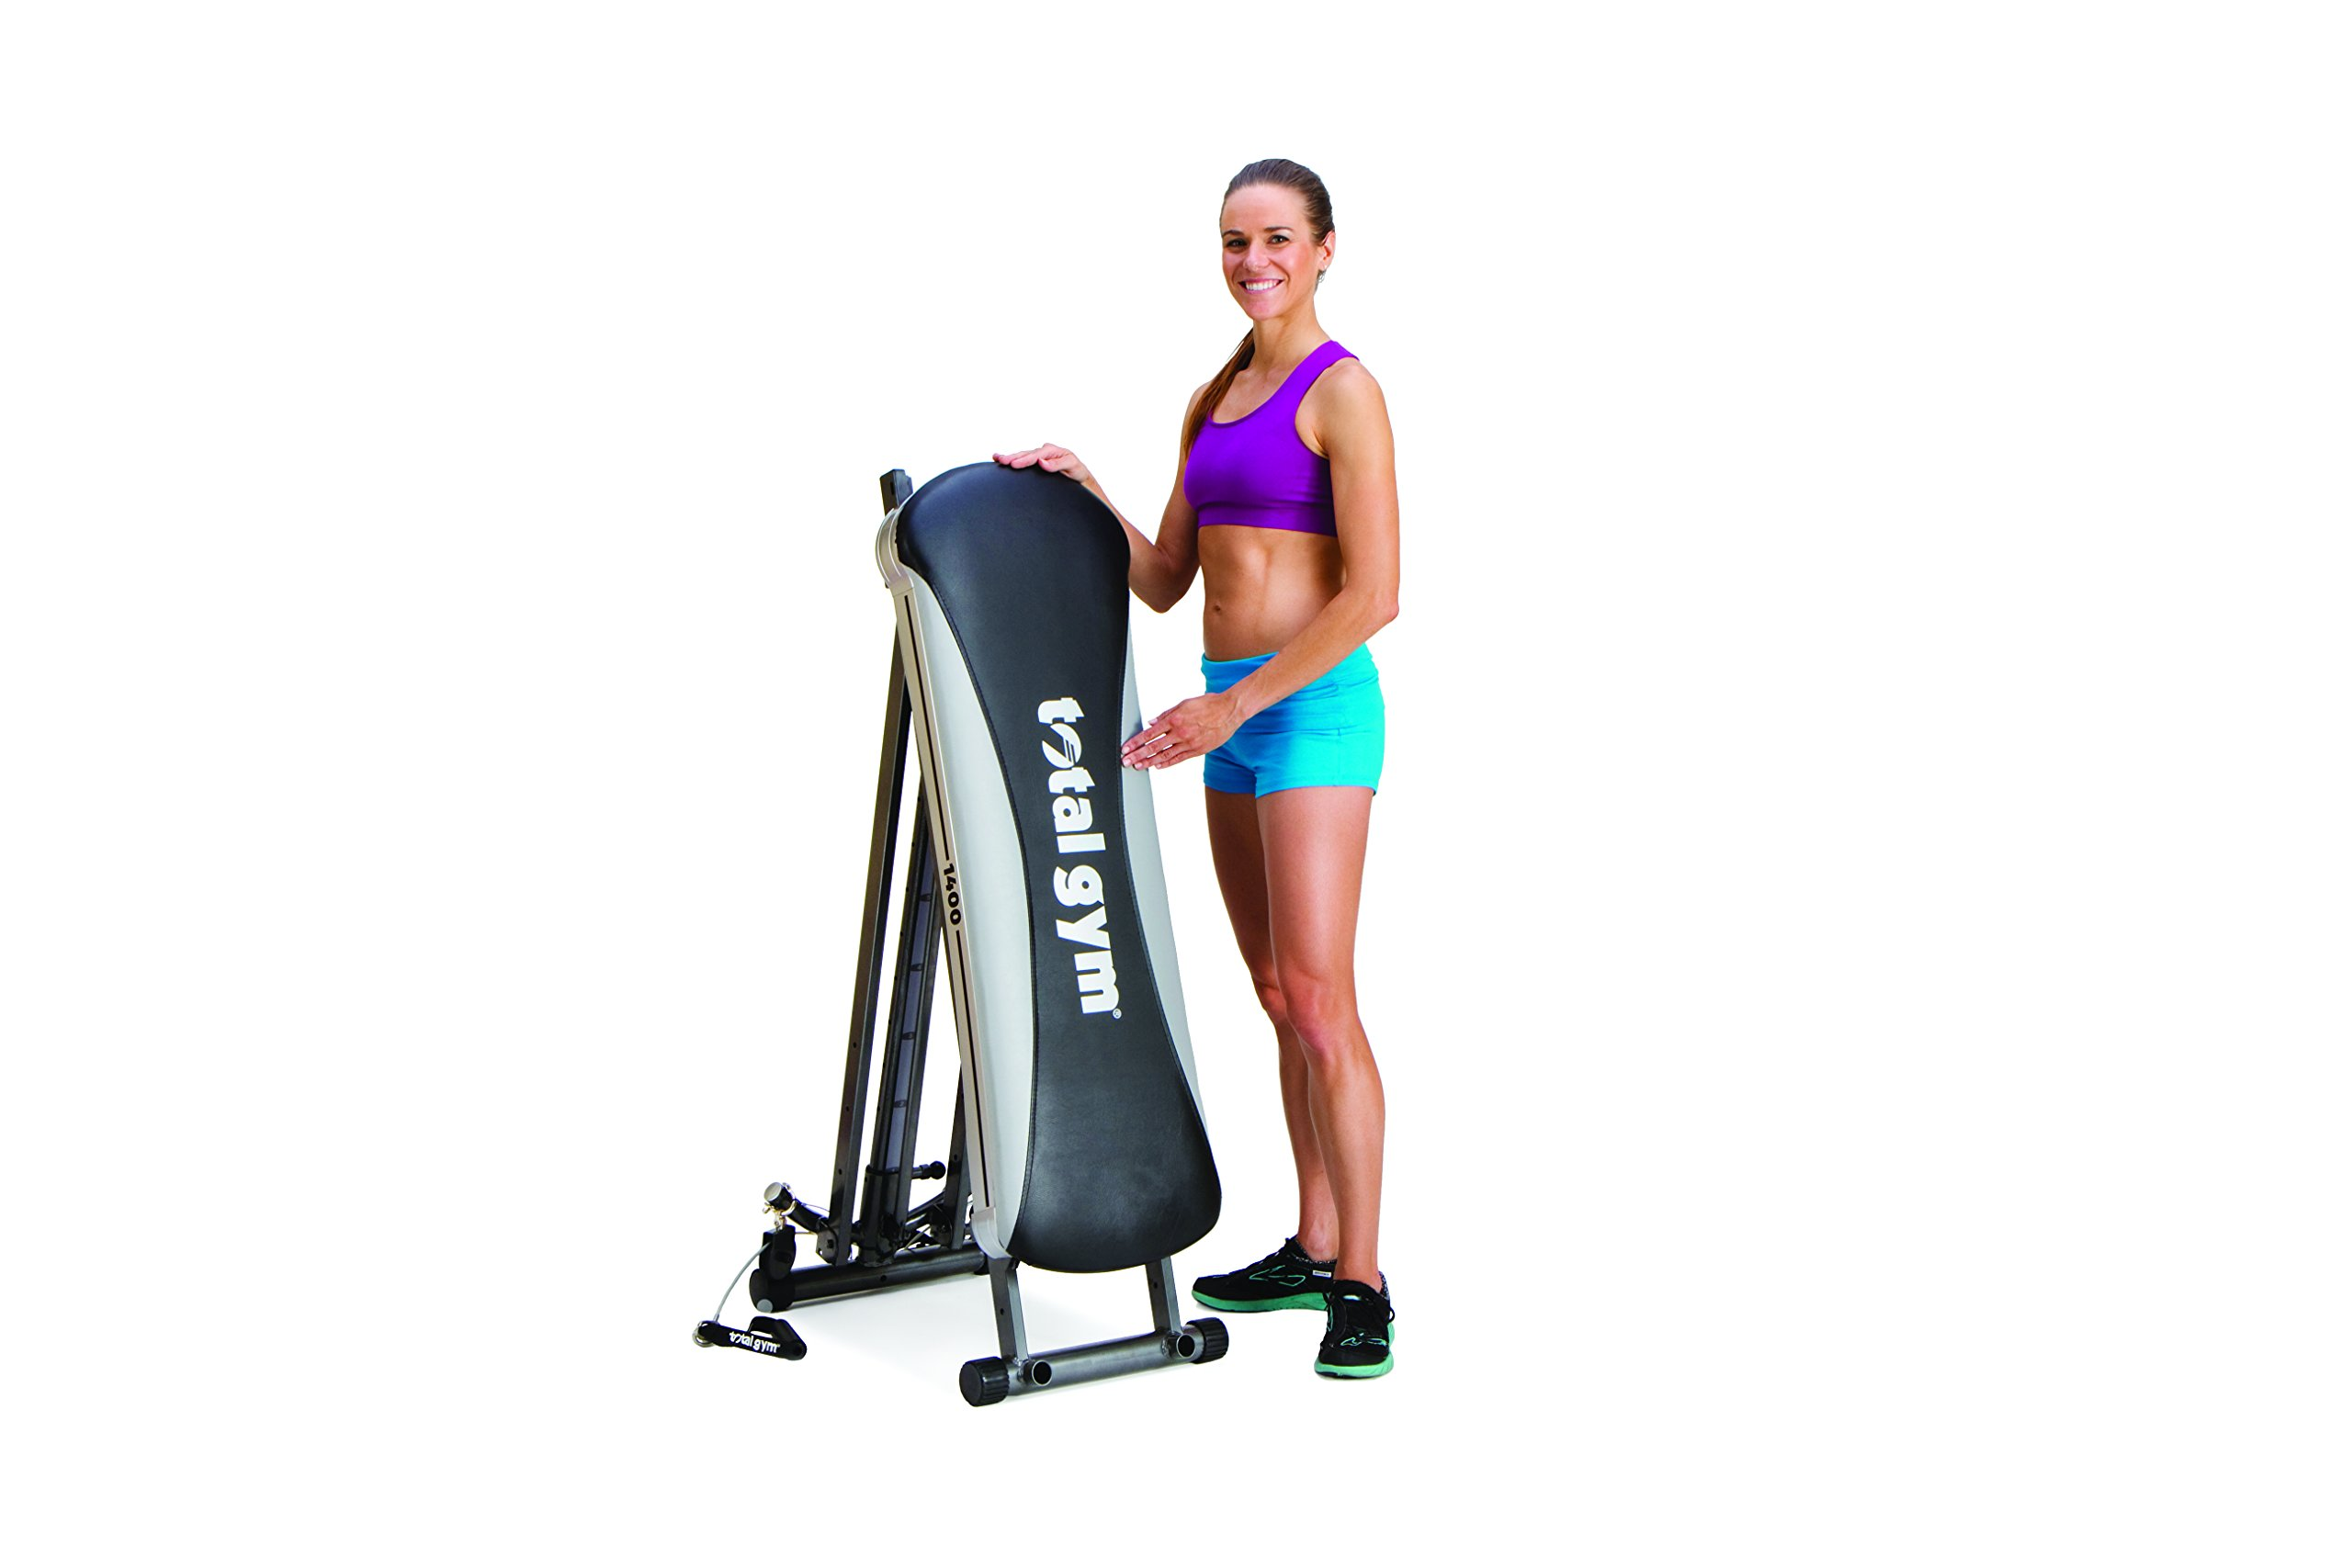 Total Gym 1400 Leg Exercise Machines by Total Gym (Image #6)